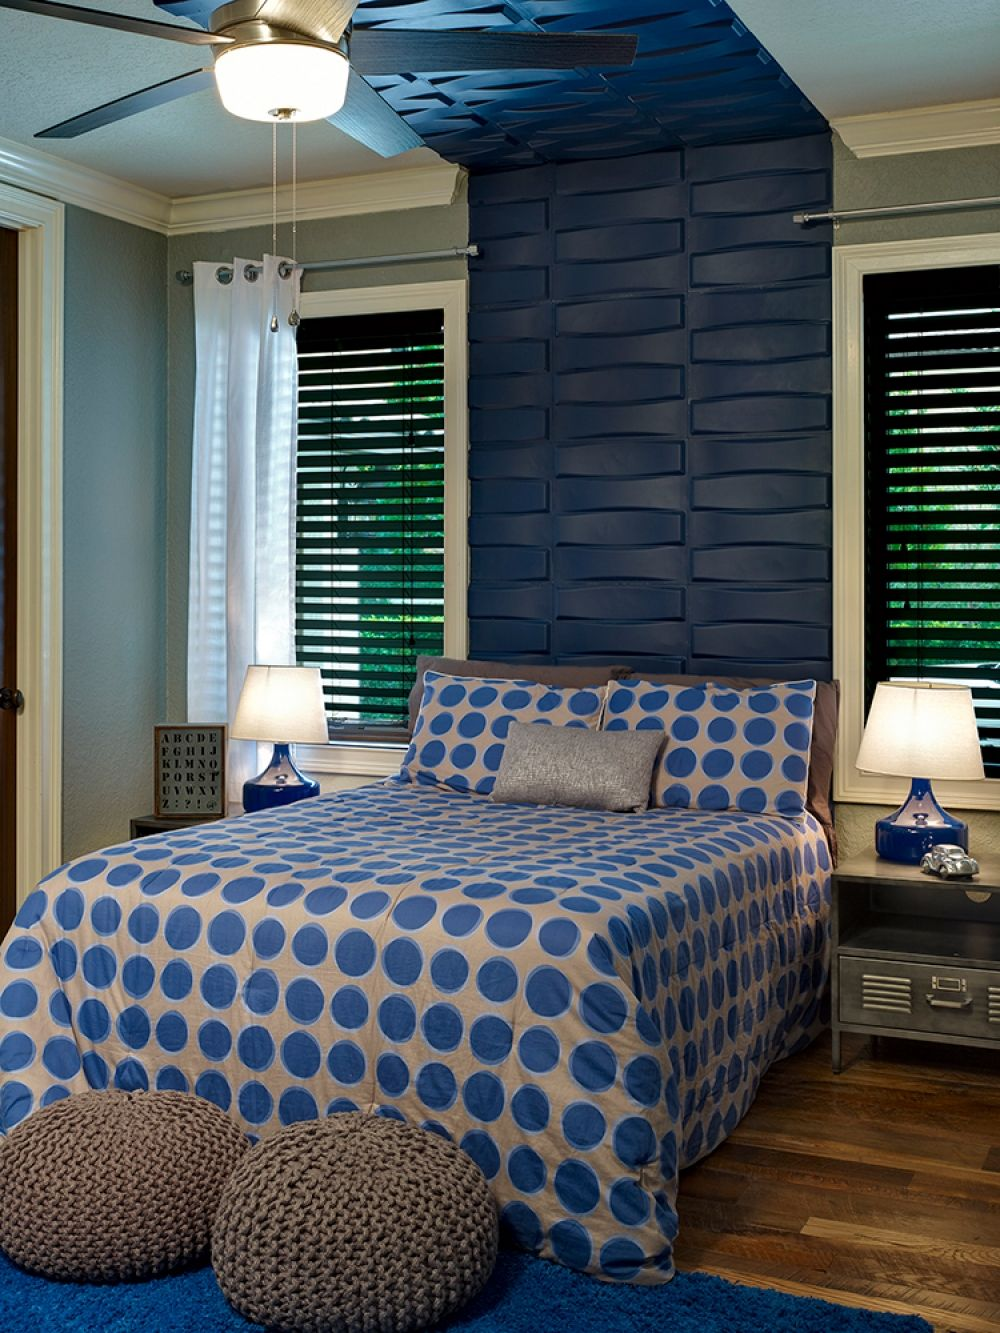 Bedroom with a architectural indigo headboard